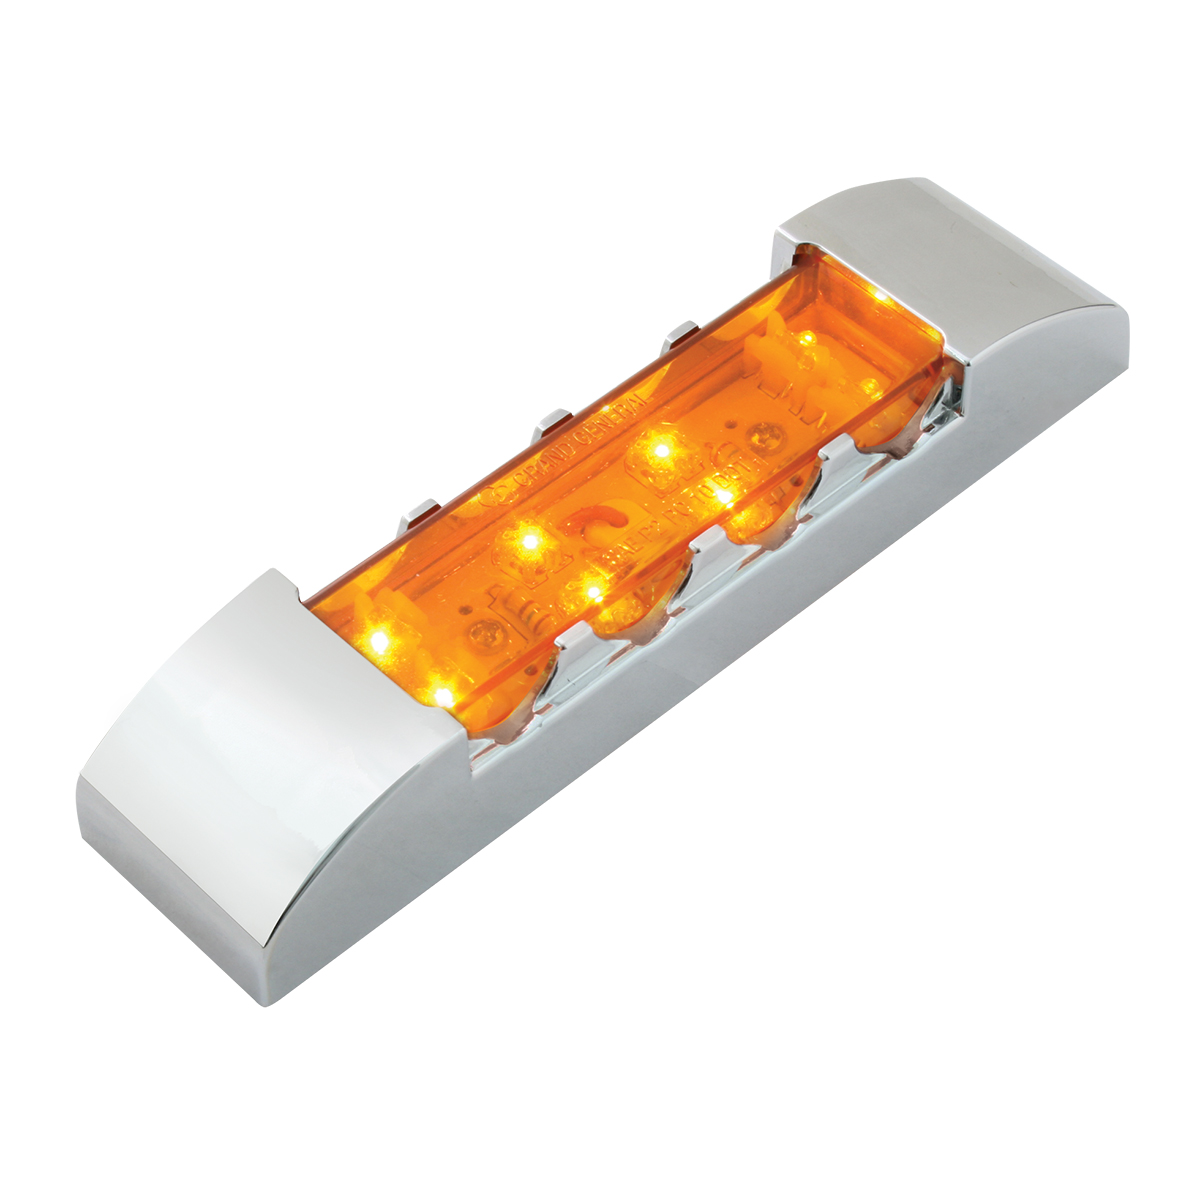 76180 Rectangular Wide Angle LED Light w/ Chrome Plastic Bezel